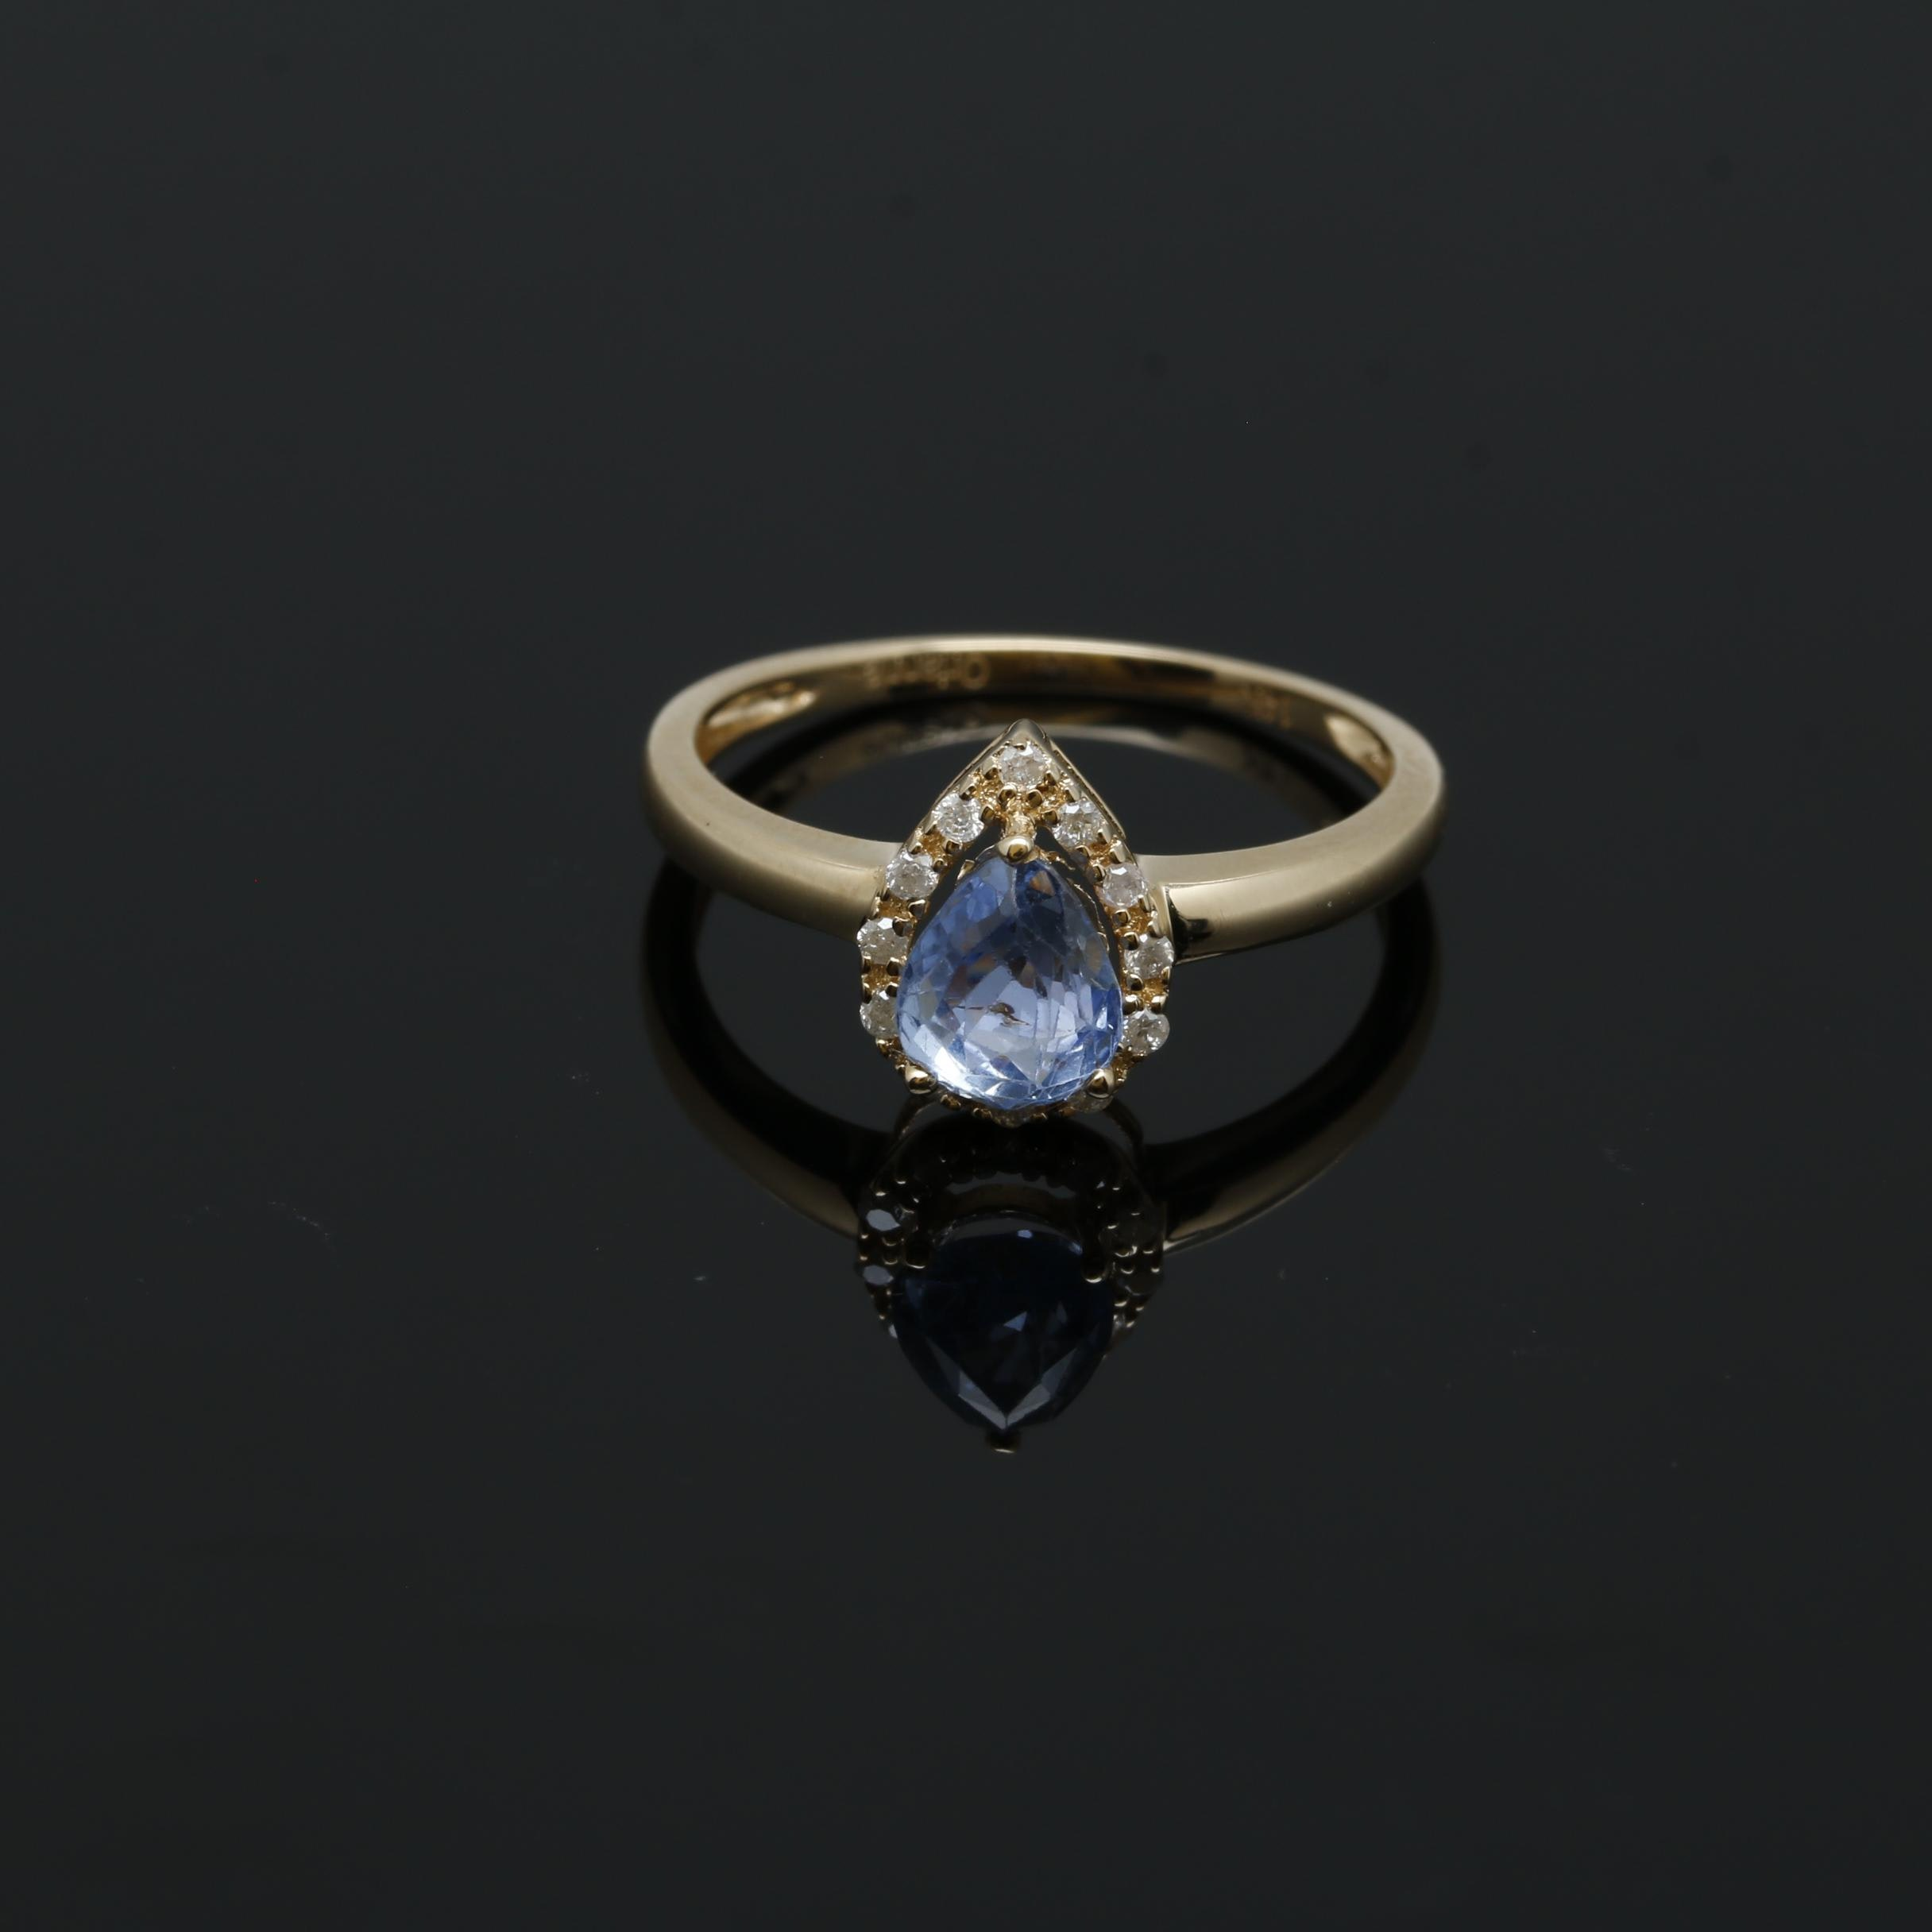 Orianne 14K Yellow Gold Sapphire and Diamond Ring